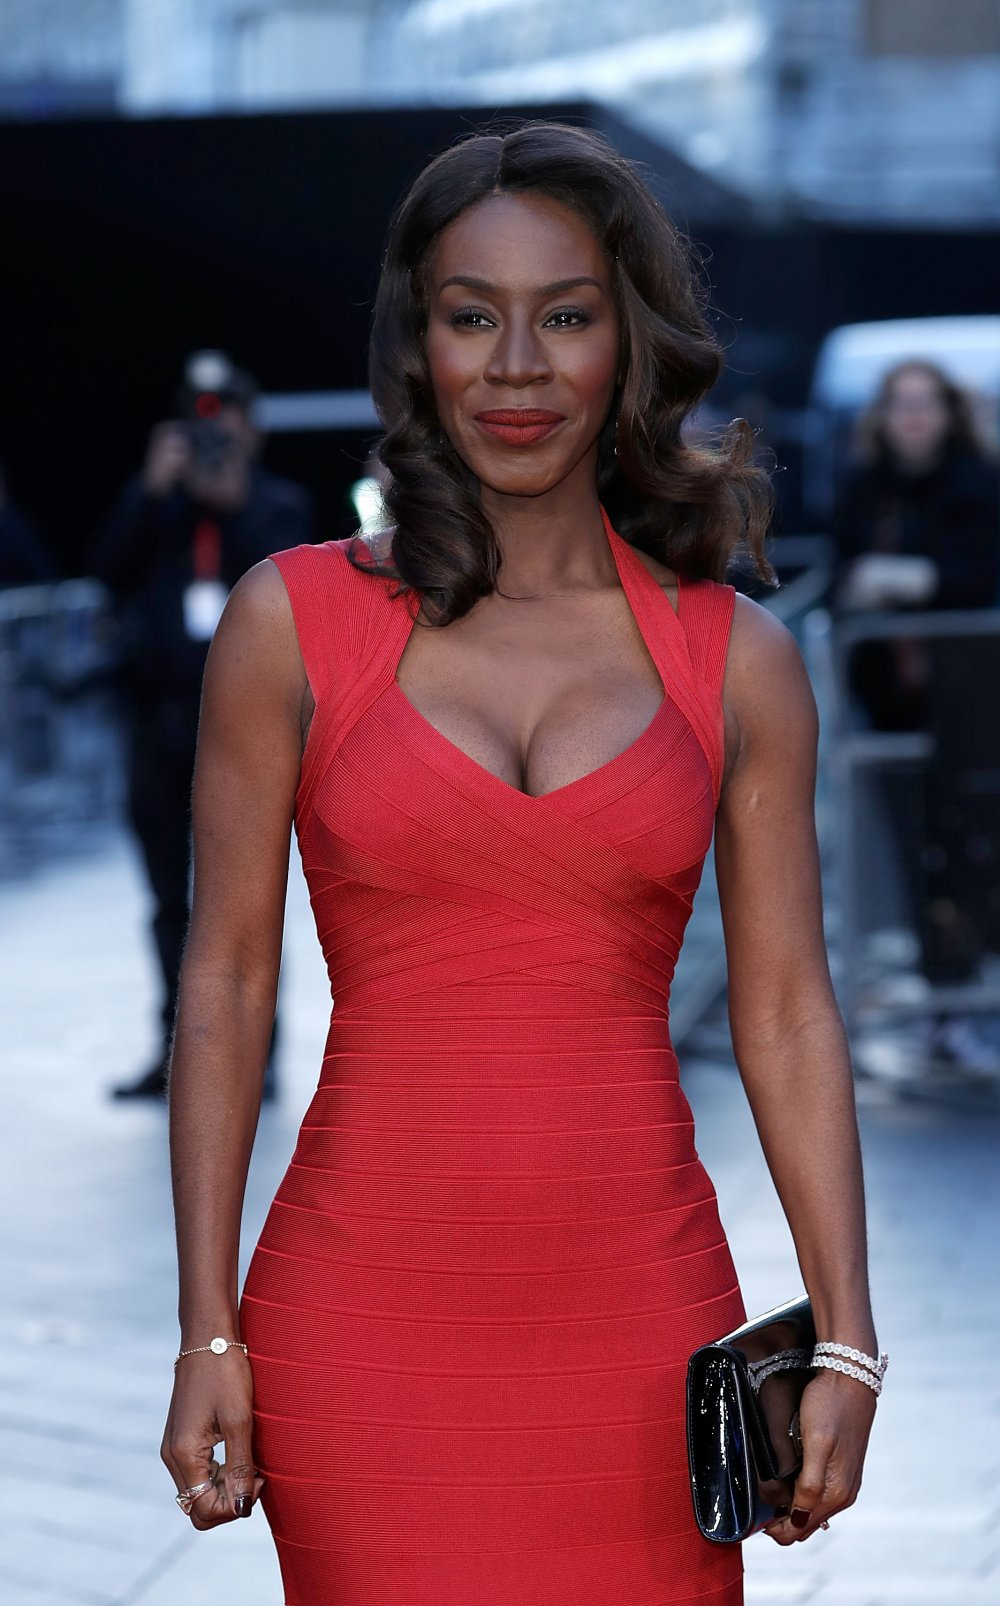 Amma Asante attends the A United Kingdom Opening Night Gala screening during the 60th BFI London Film Festival